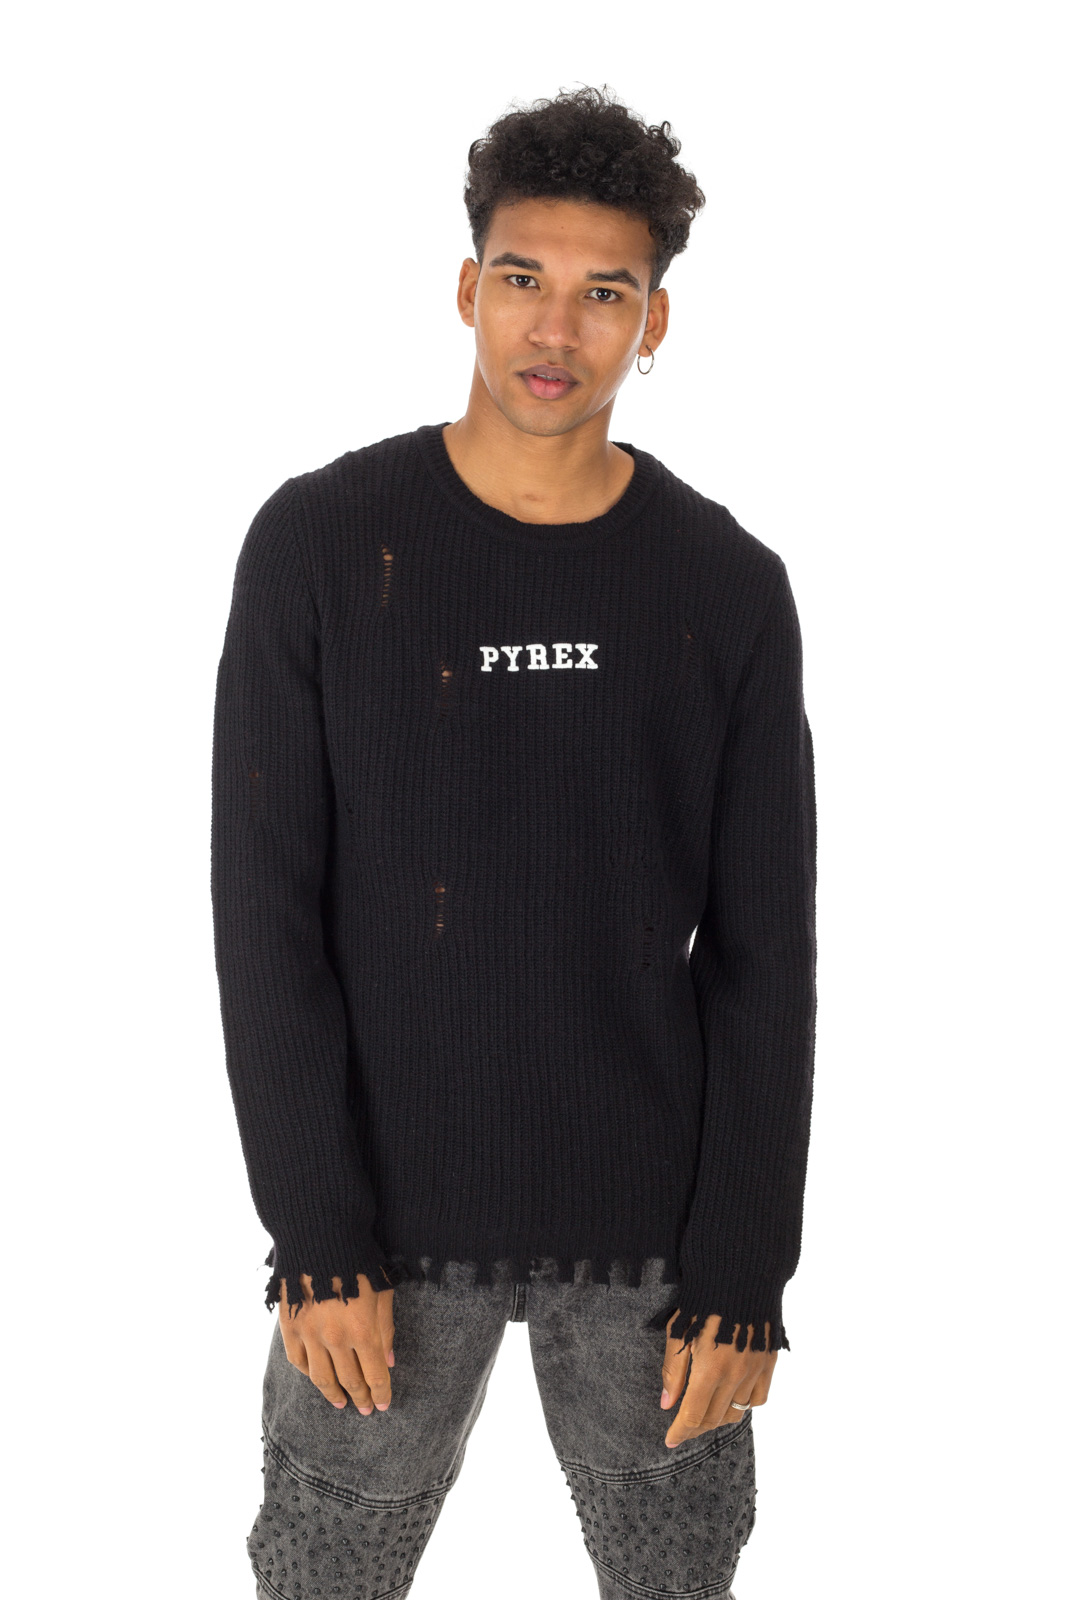 Pyrex - Black sweater with teats and cut alive